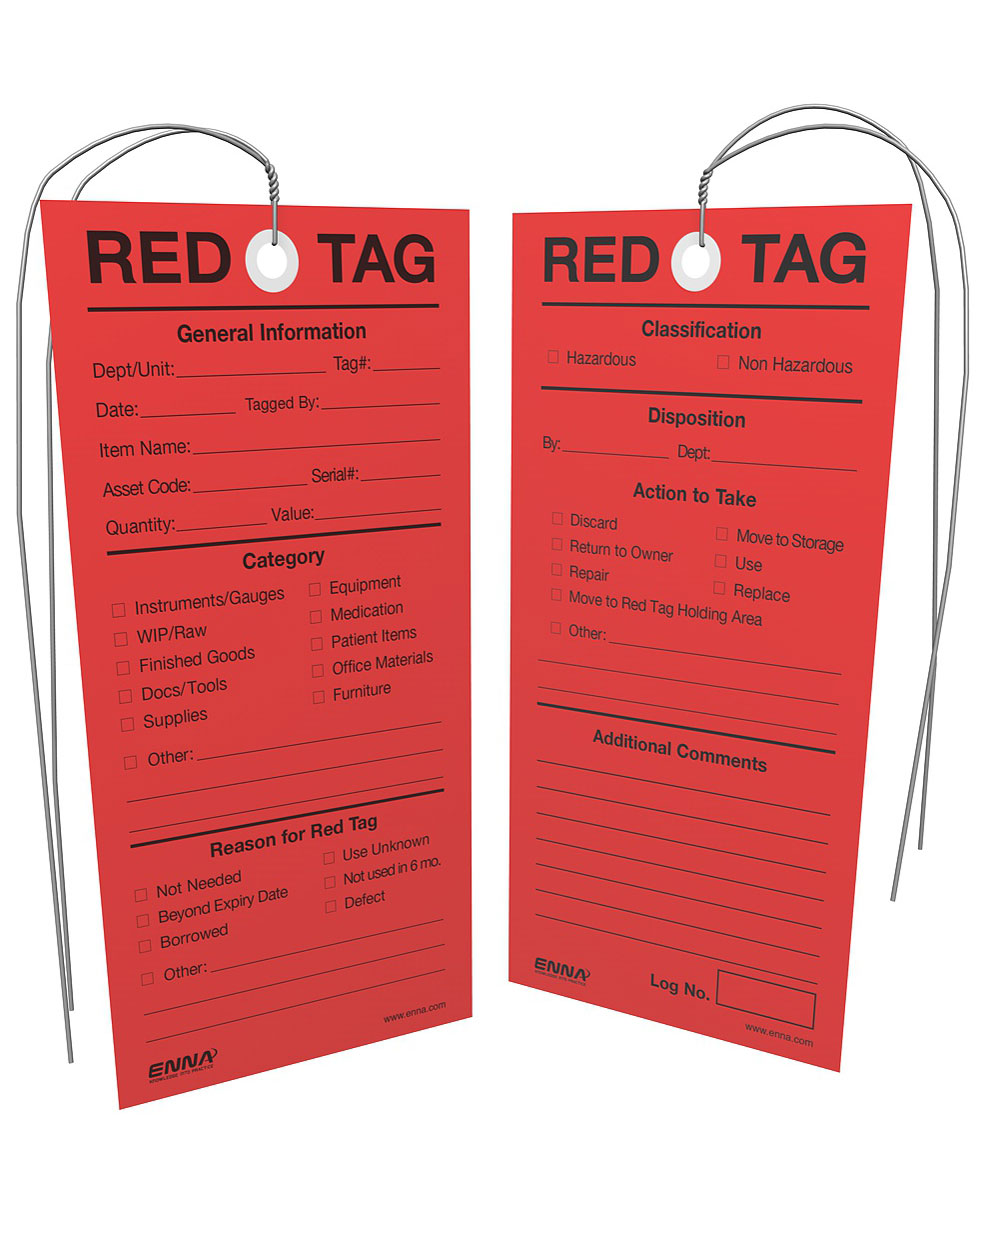 Red Tags available on Amazon at stupidly extortionate price